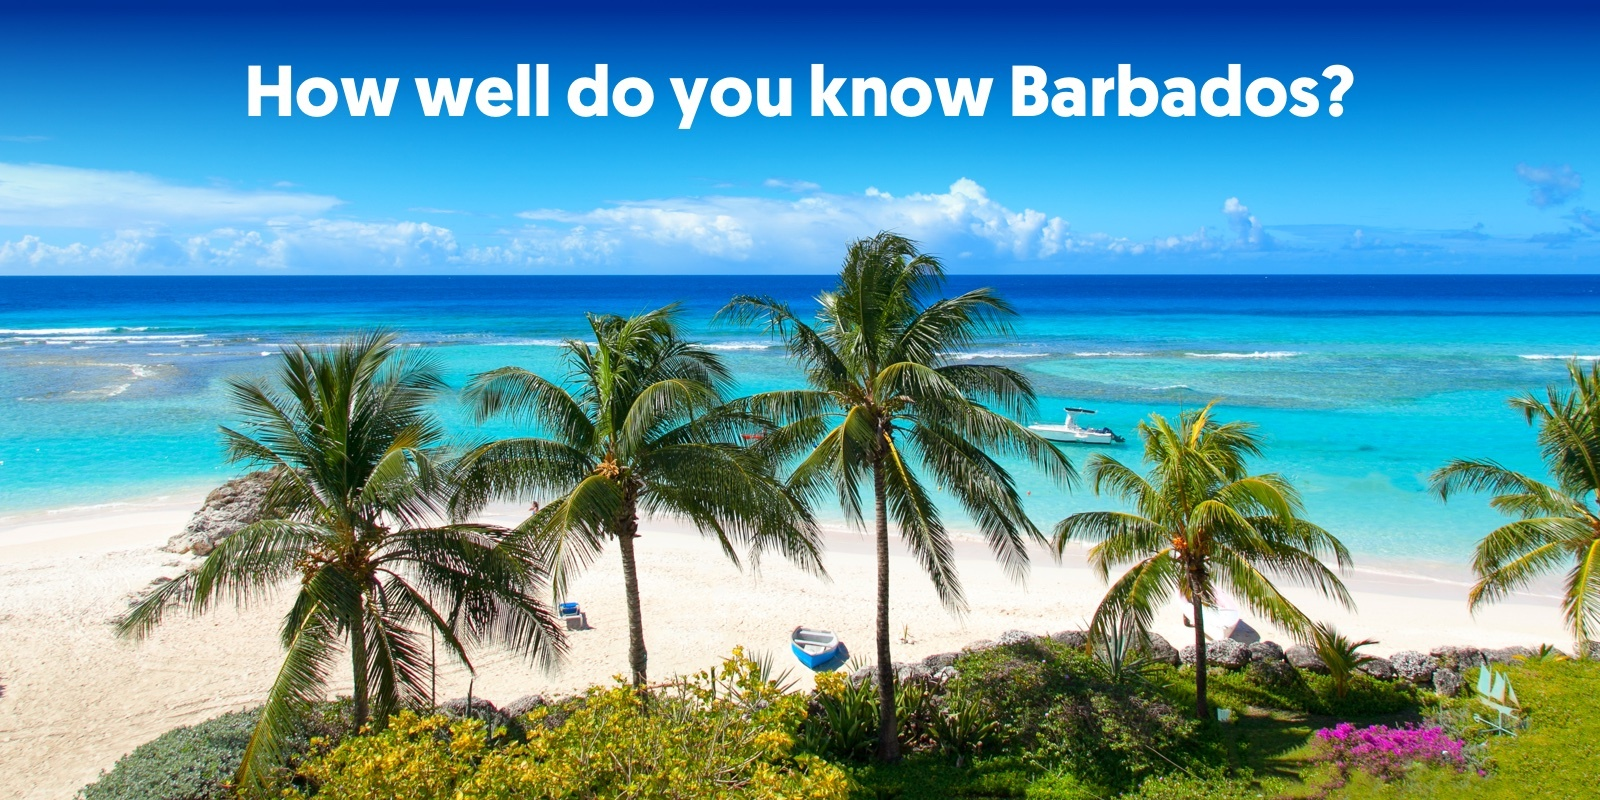 how well do you know Barbados?